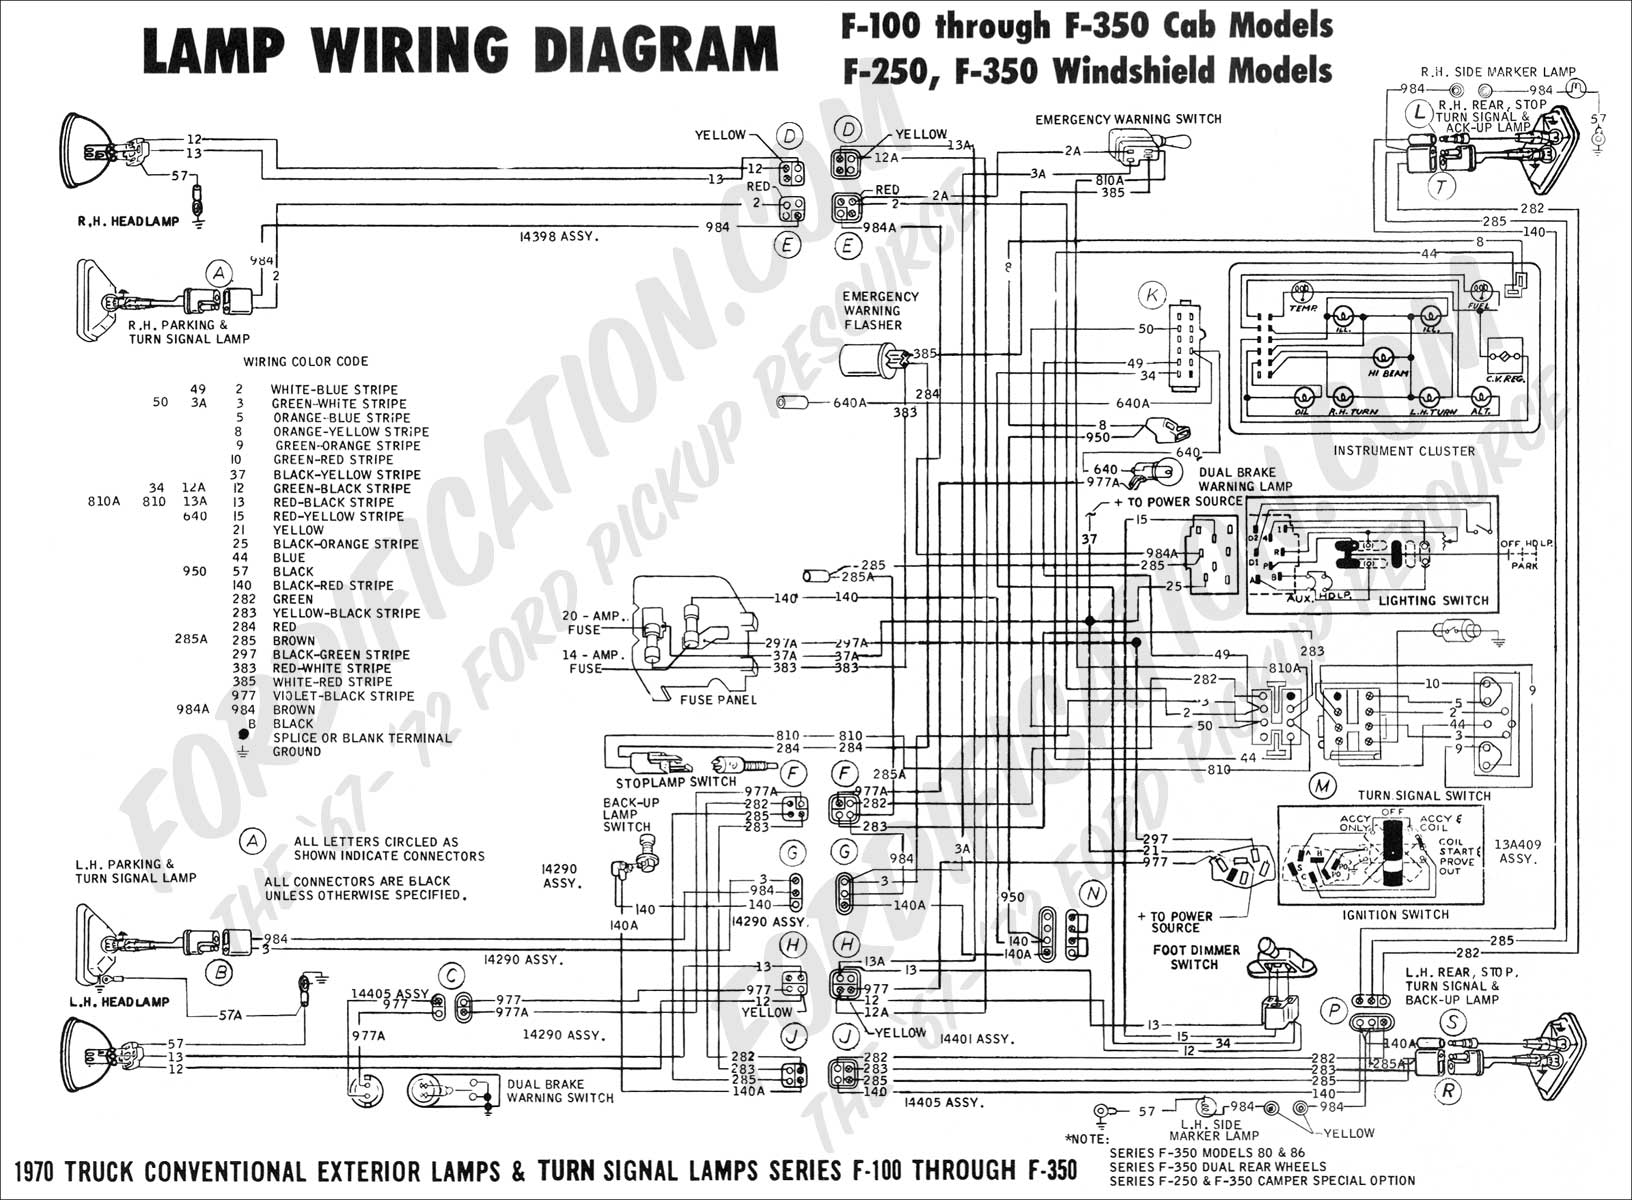 hight resolution of e350 wiring diagram wiring diagram todays rh 7 14 10 1813weddingbarn com 2010 ford e350 wiring diagram 2012 mercedes e350 wiring diagram